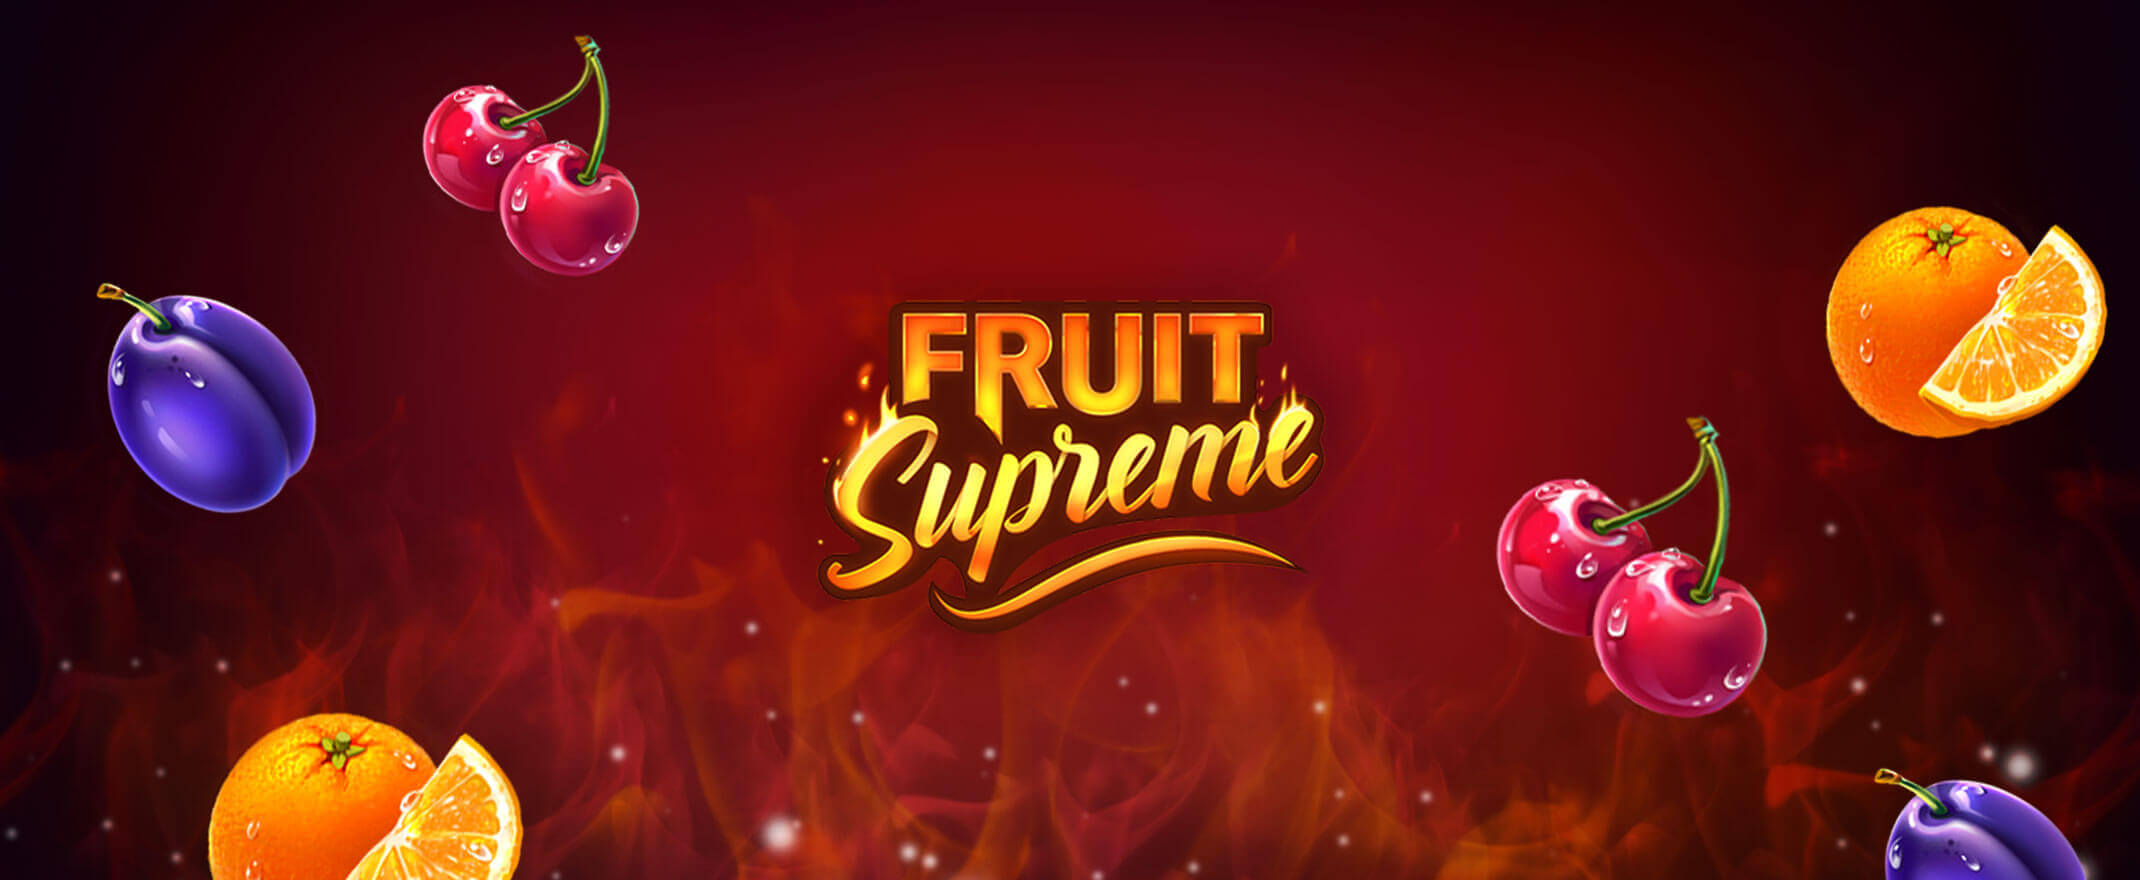 Fruit Supreme CS